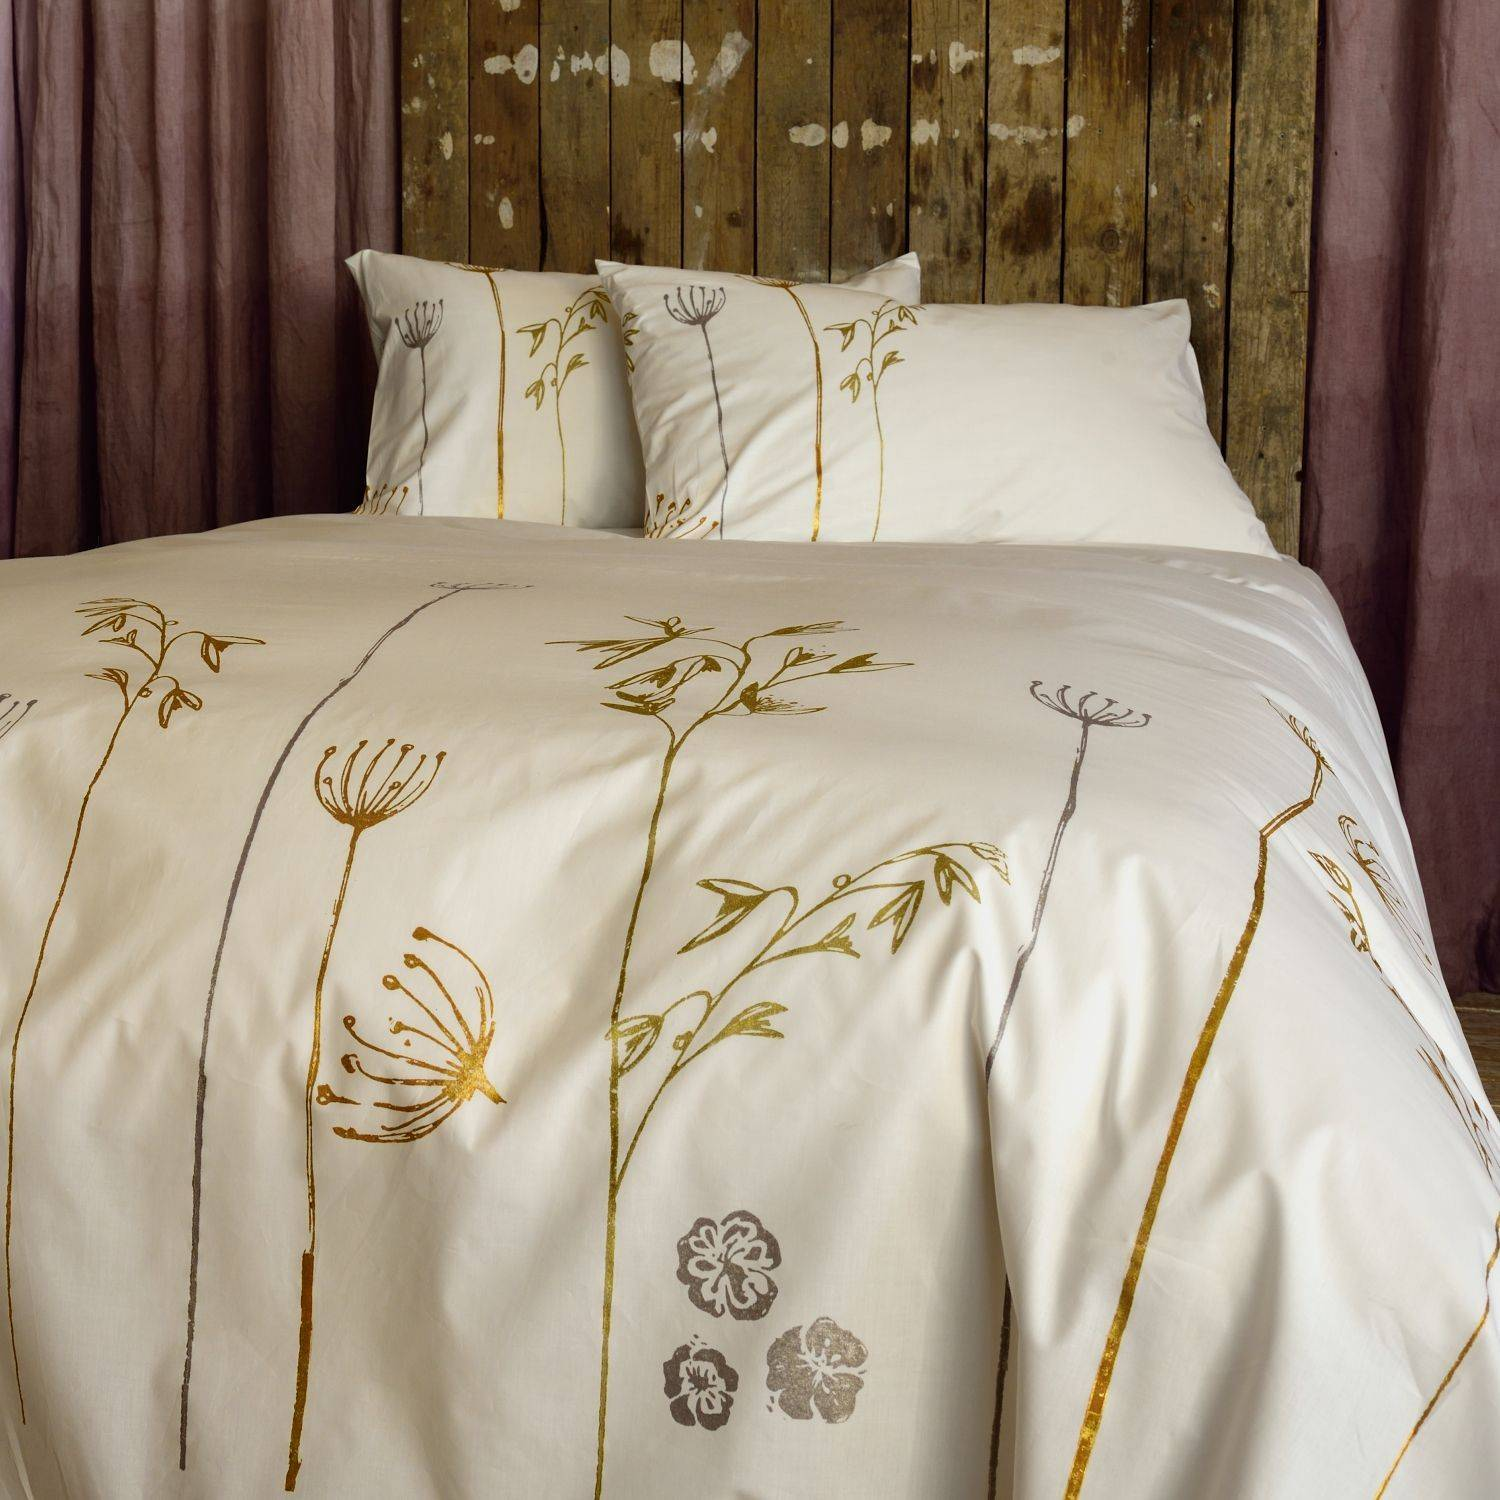 Luxury Bedding Inspirational Beautiful Luxury Bedding Set Murous Gold